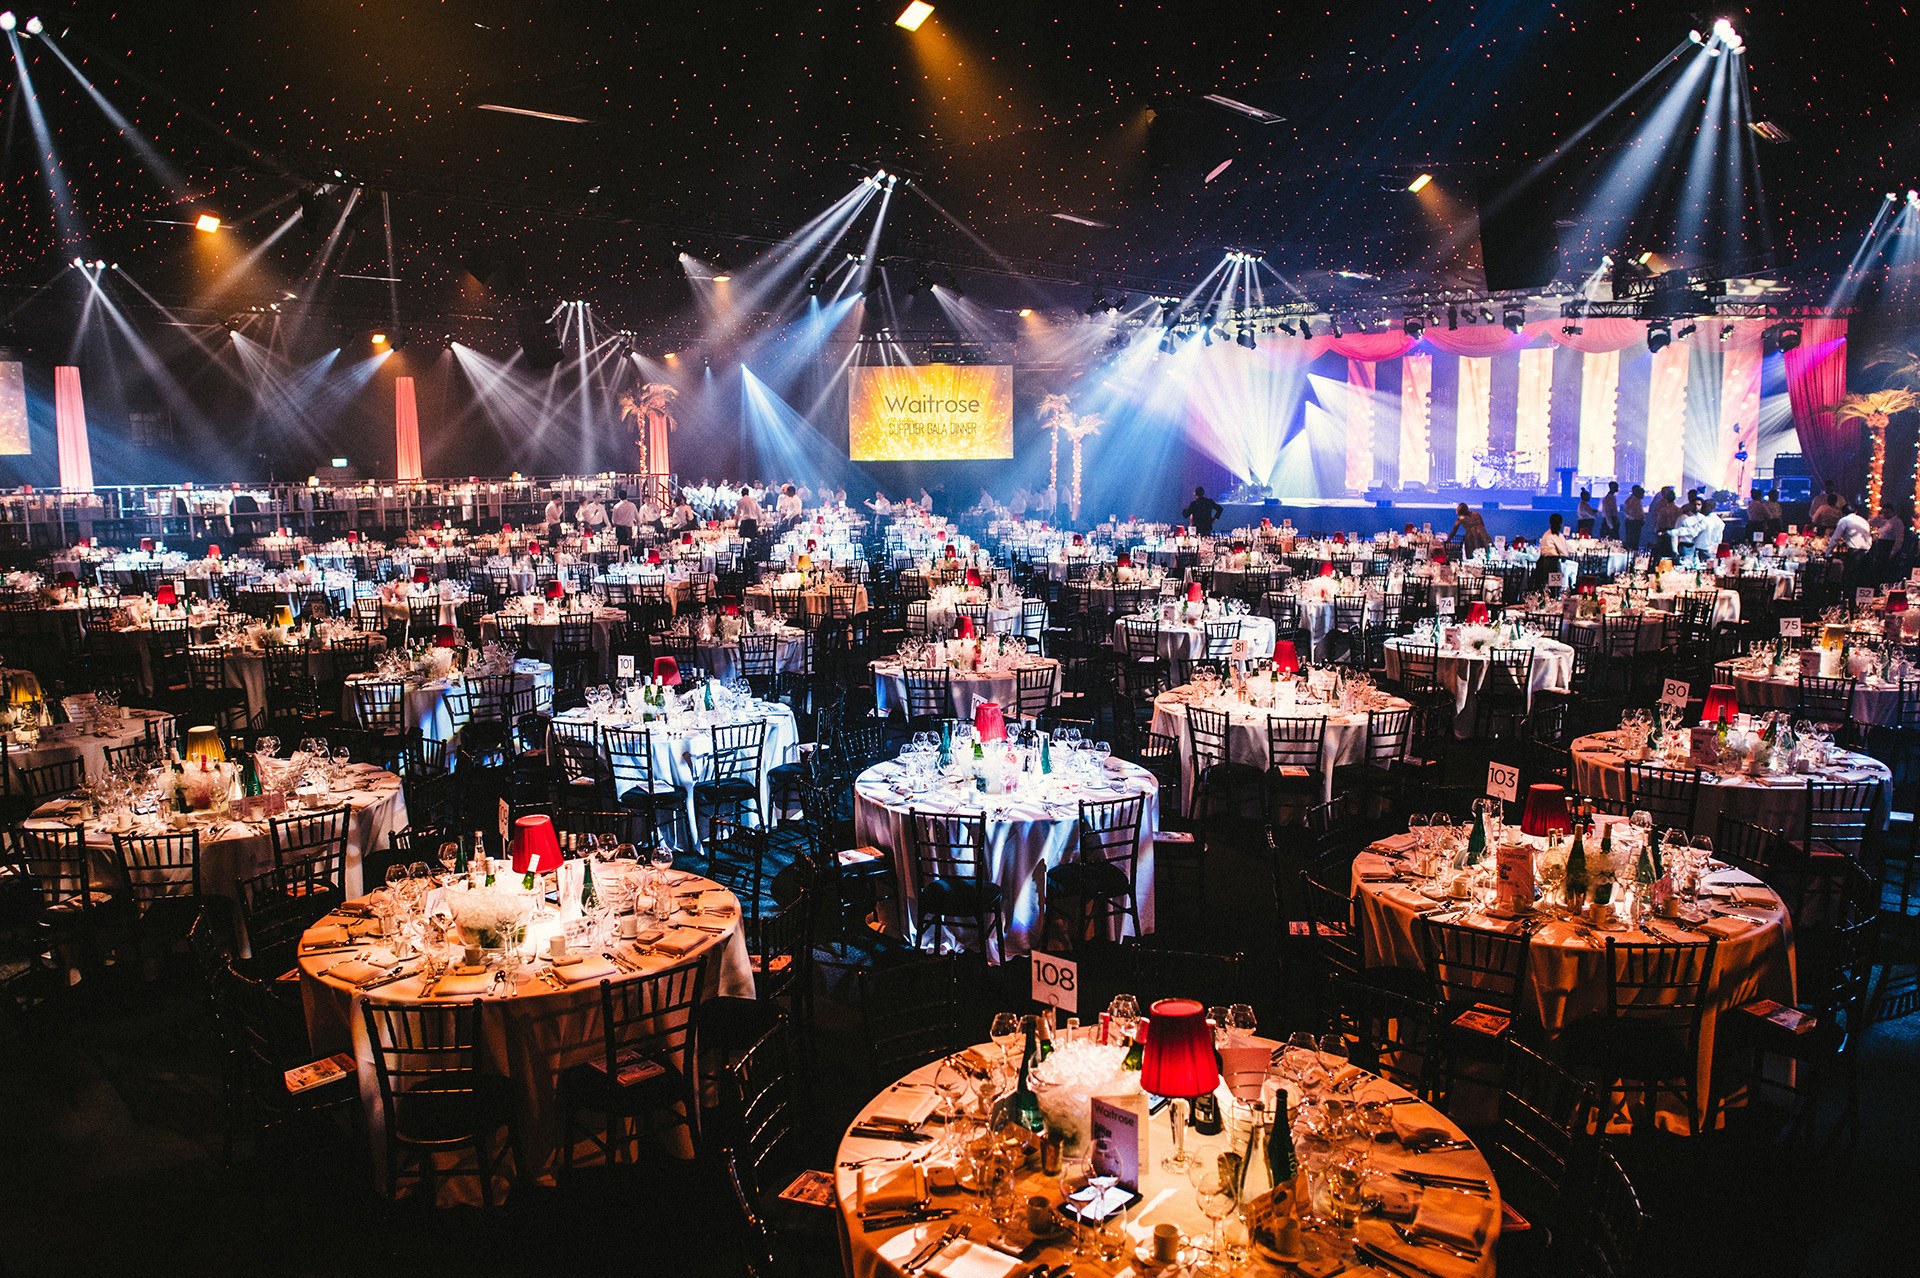 Las Vegas Dinner Shows  BRINGING THE BRIGHT LIGHTS OF VEGAS TO BATTERSEA FOR